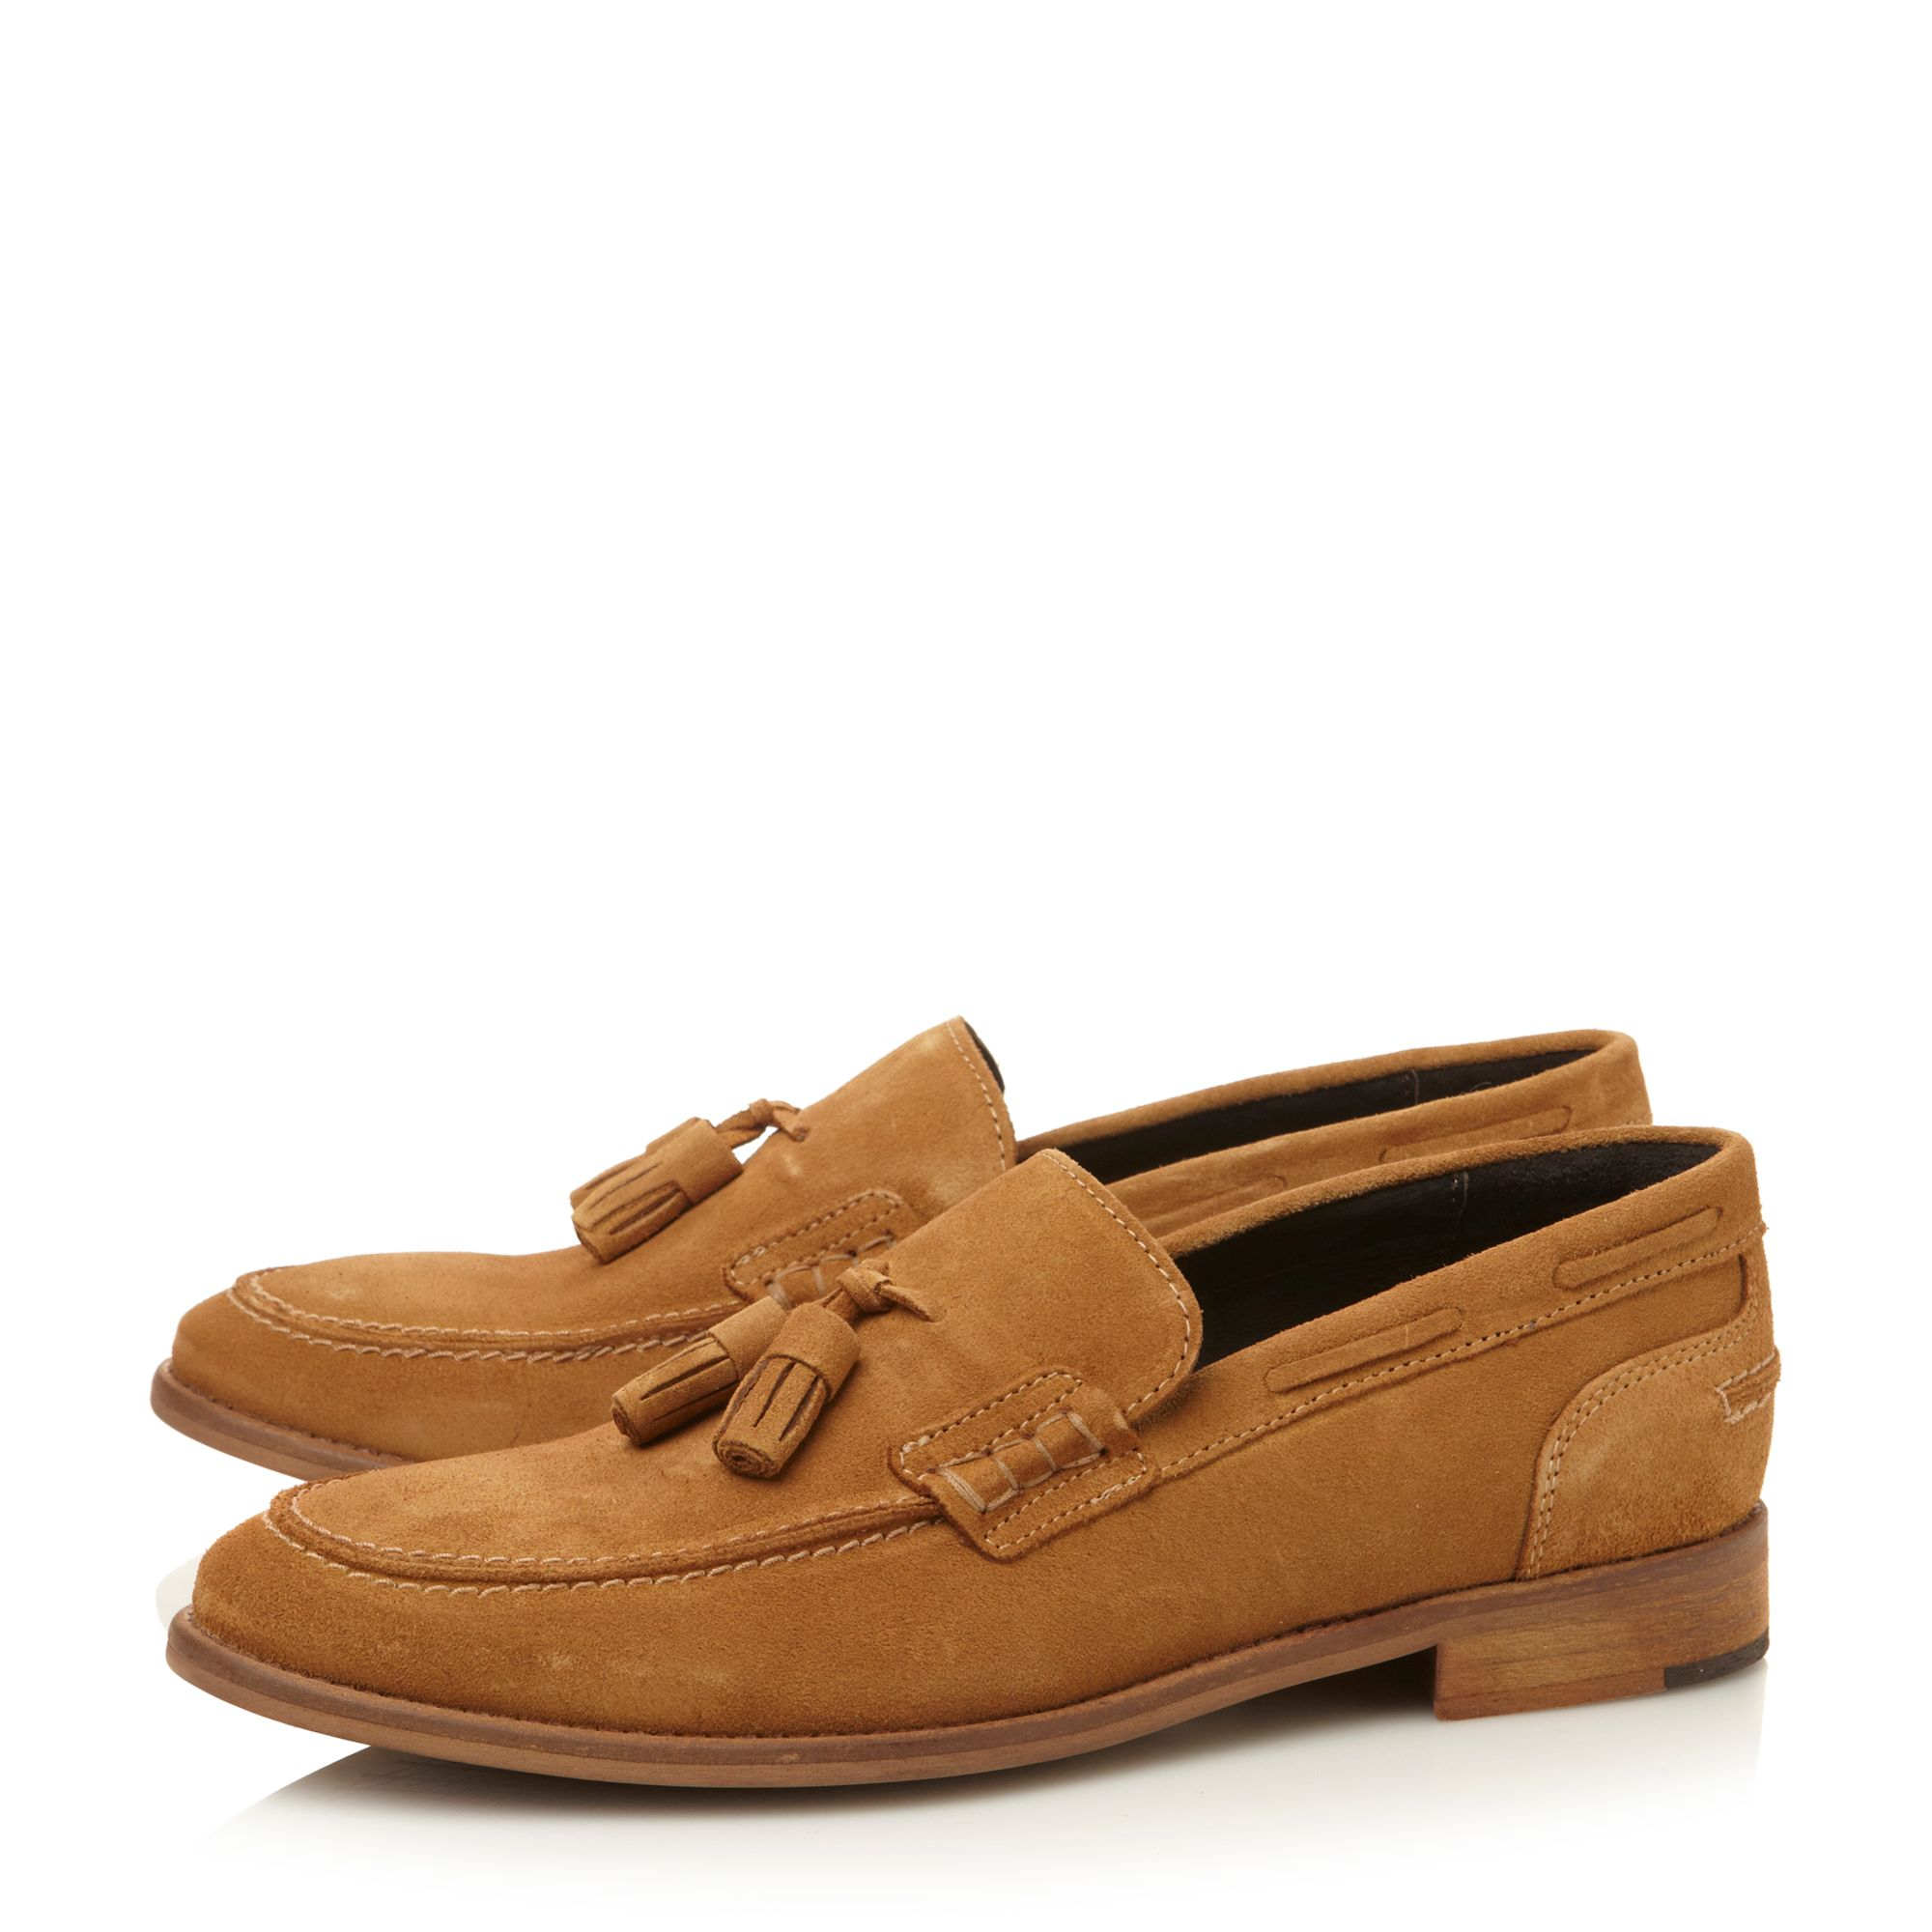 Astoria suede tassle loafers